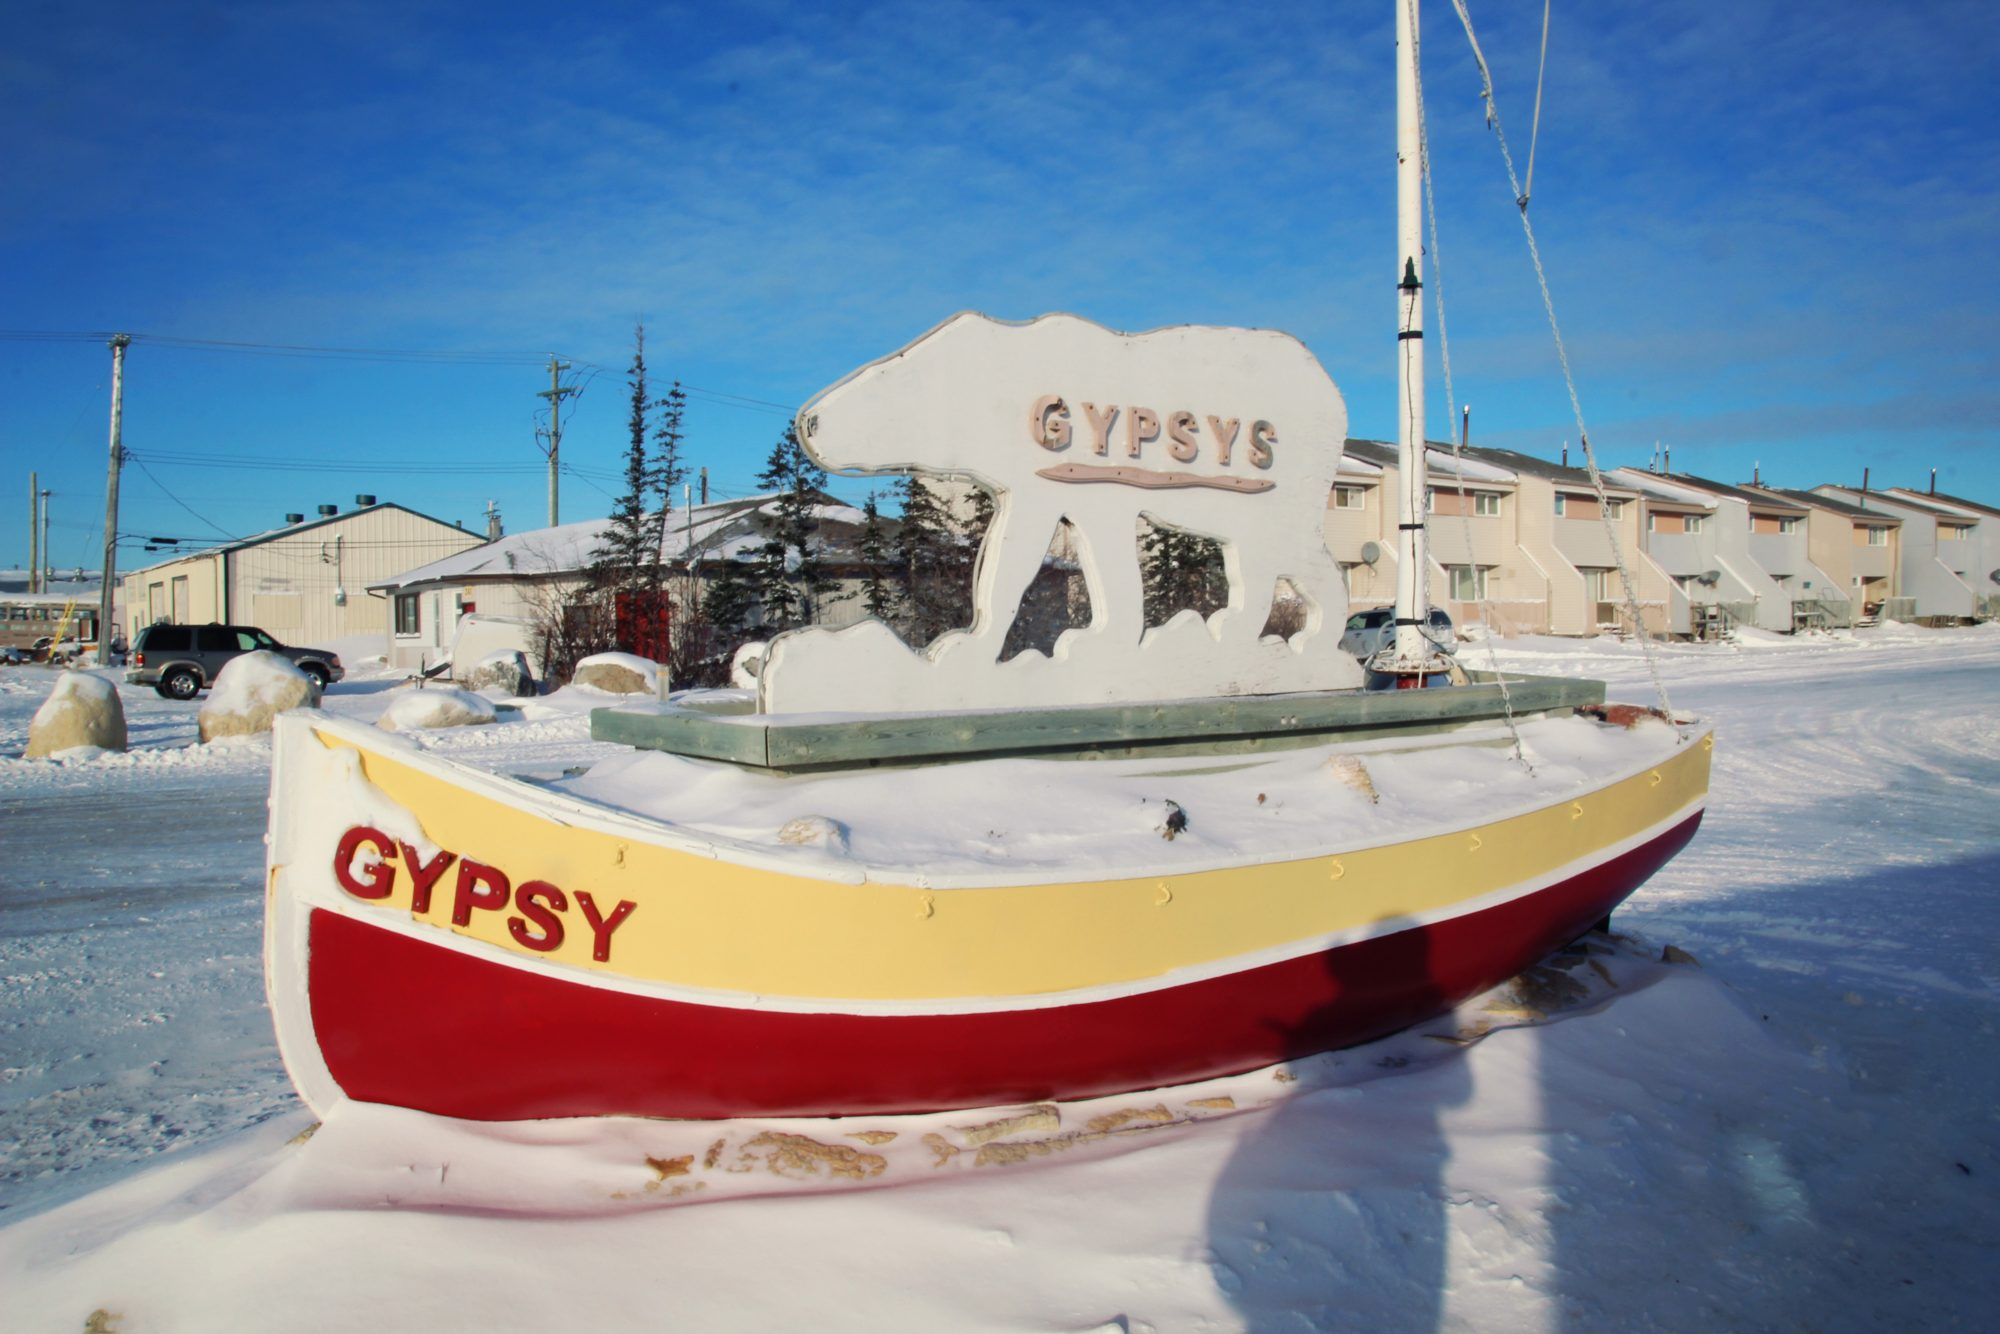 Gypsy's: Churchill, Manitoba